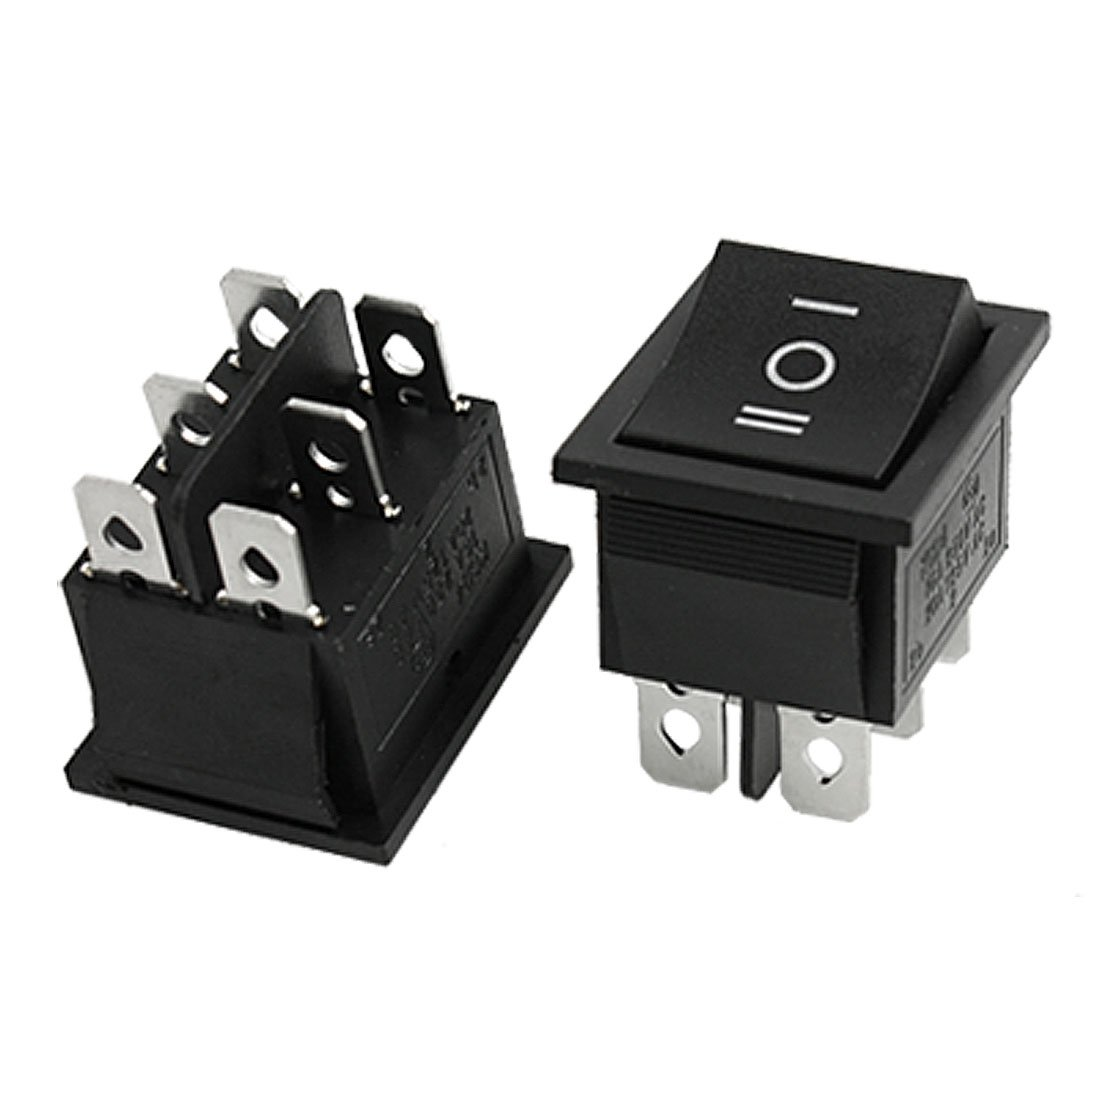 2pcs 6 Pin DPDT ON-OFF-ON 3 Position Snap in Rocker Switch 15A/250V 20A/125V AC yellow led on off rocker switch w terminal protector set for electric appliances 2 pcs